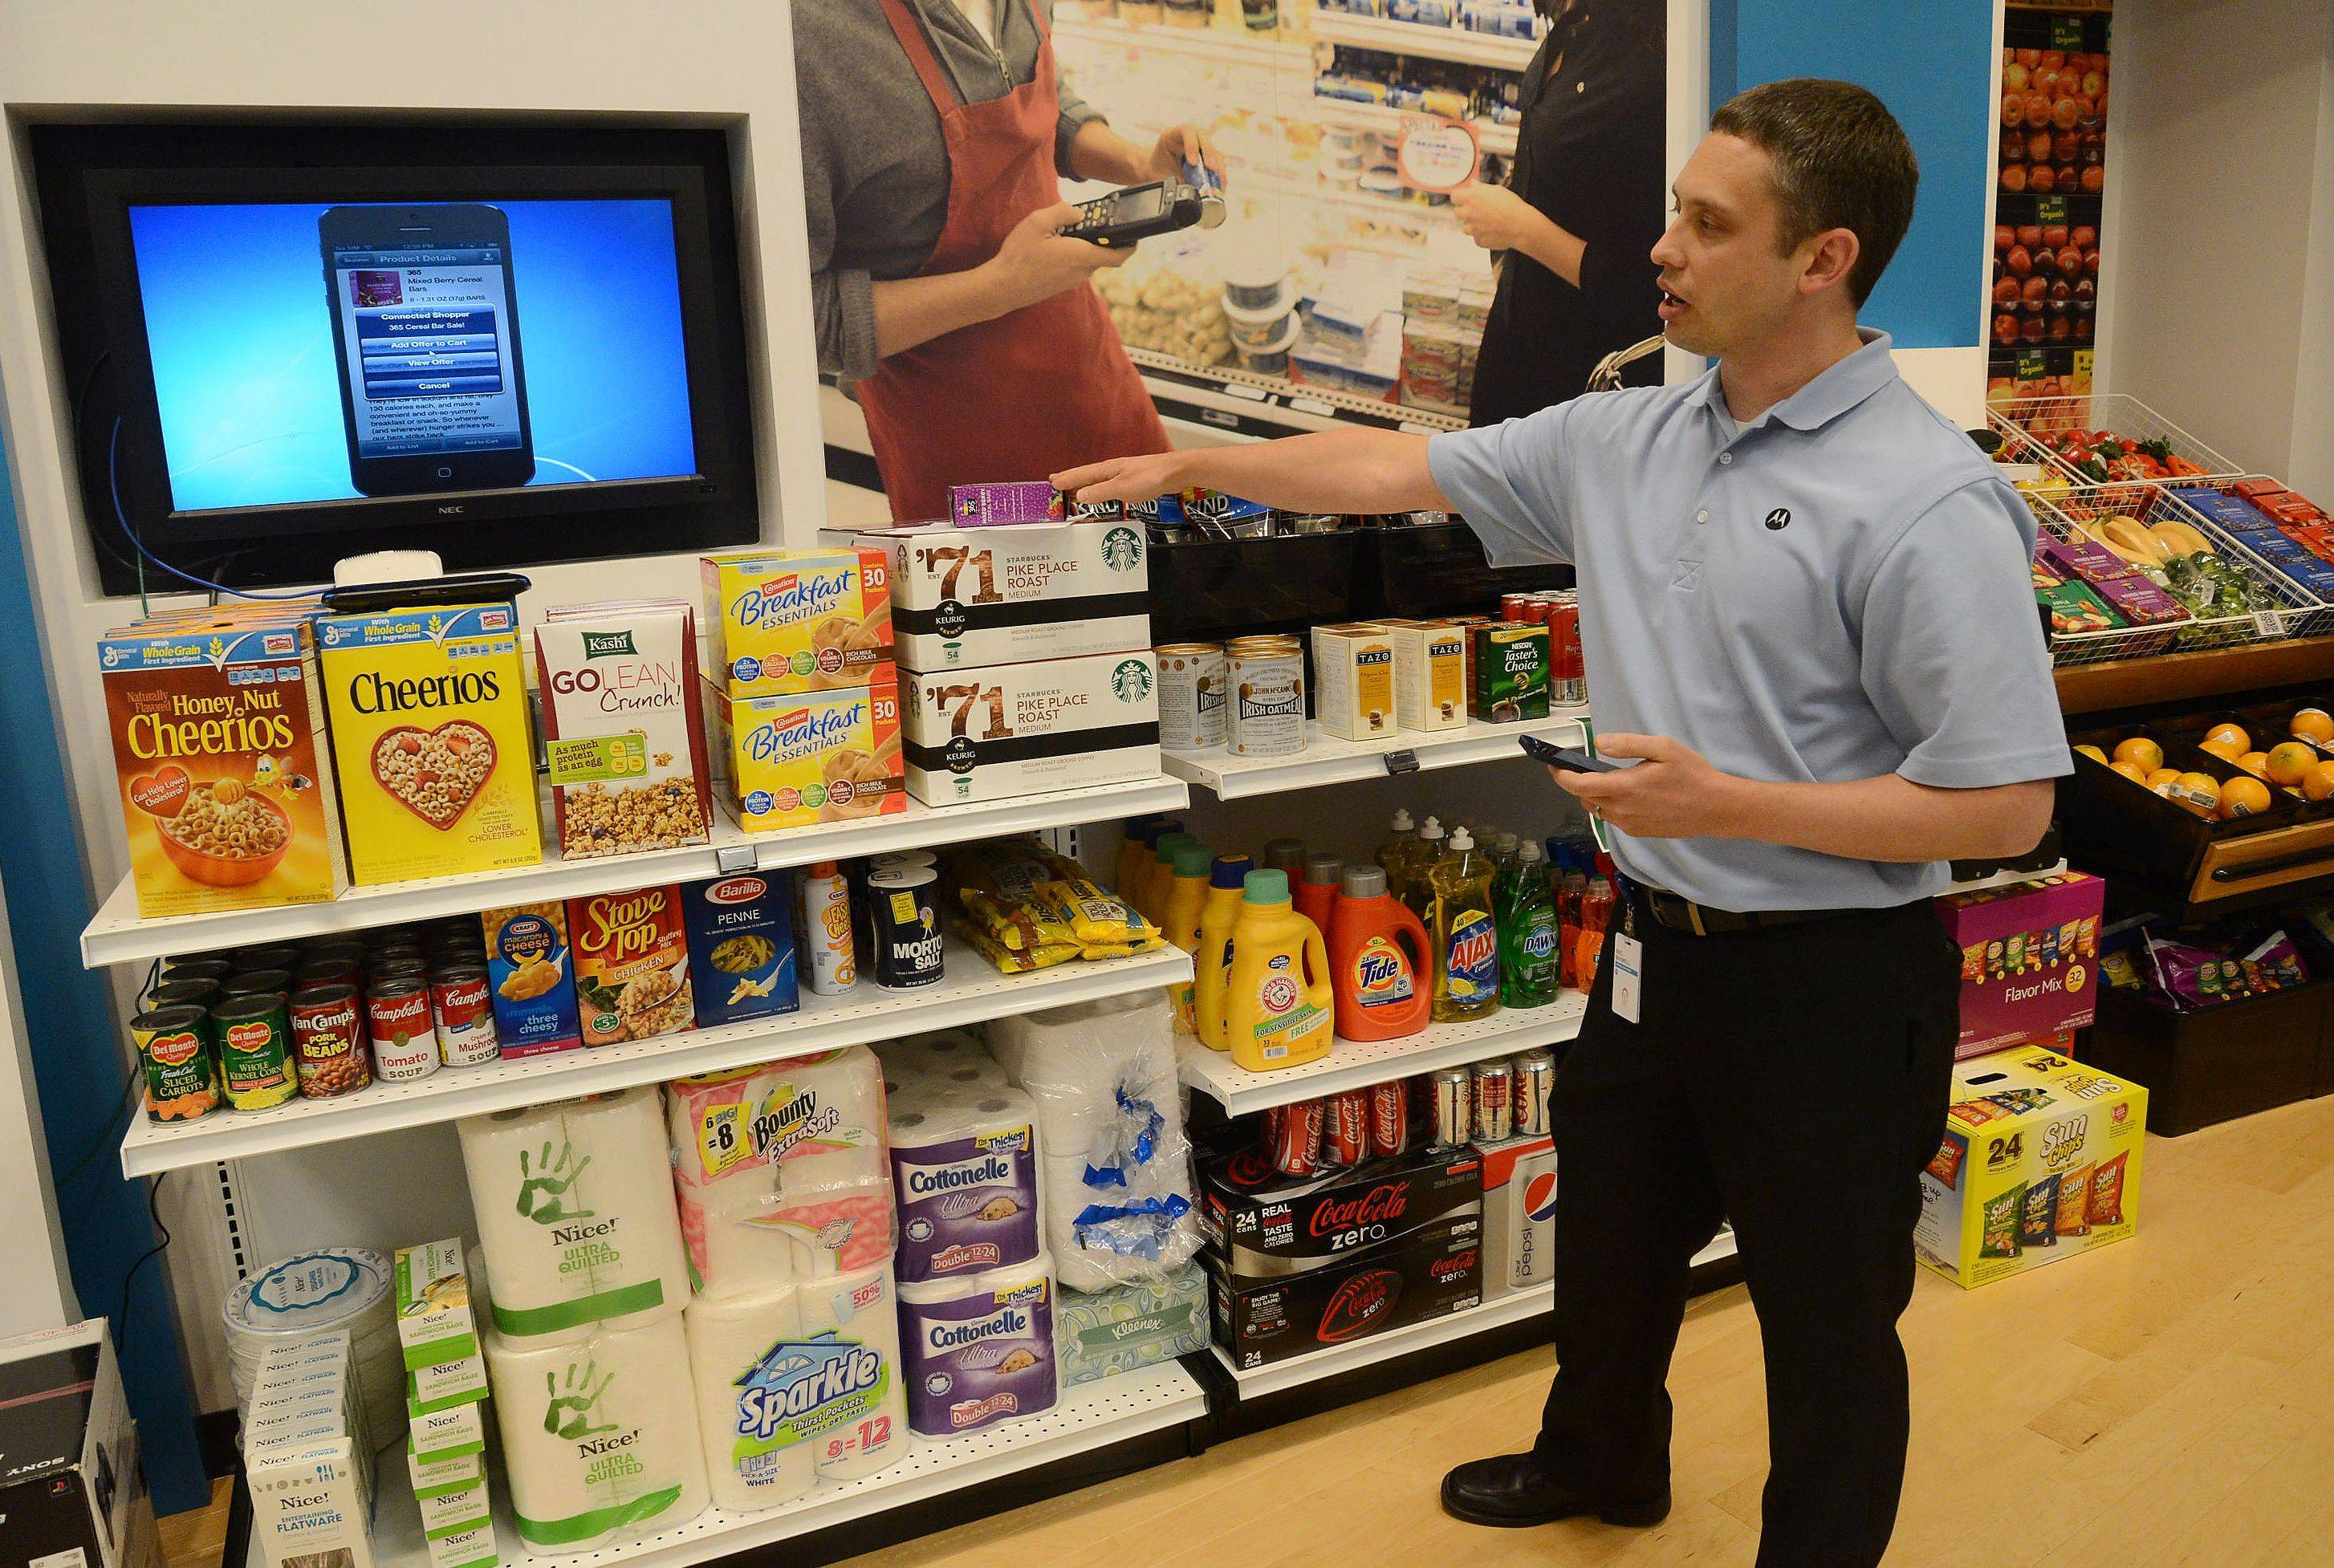 Eric Maxwell demonstrates the Connected Shopper and how a customer scans items with a Smartphone while shopping, during the Motorola Solutions Innovation Showcase 2013.